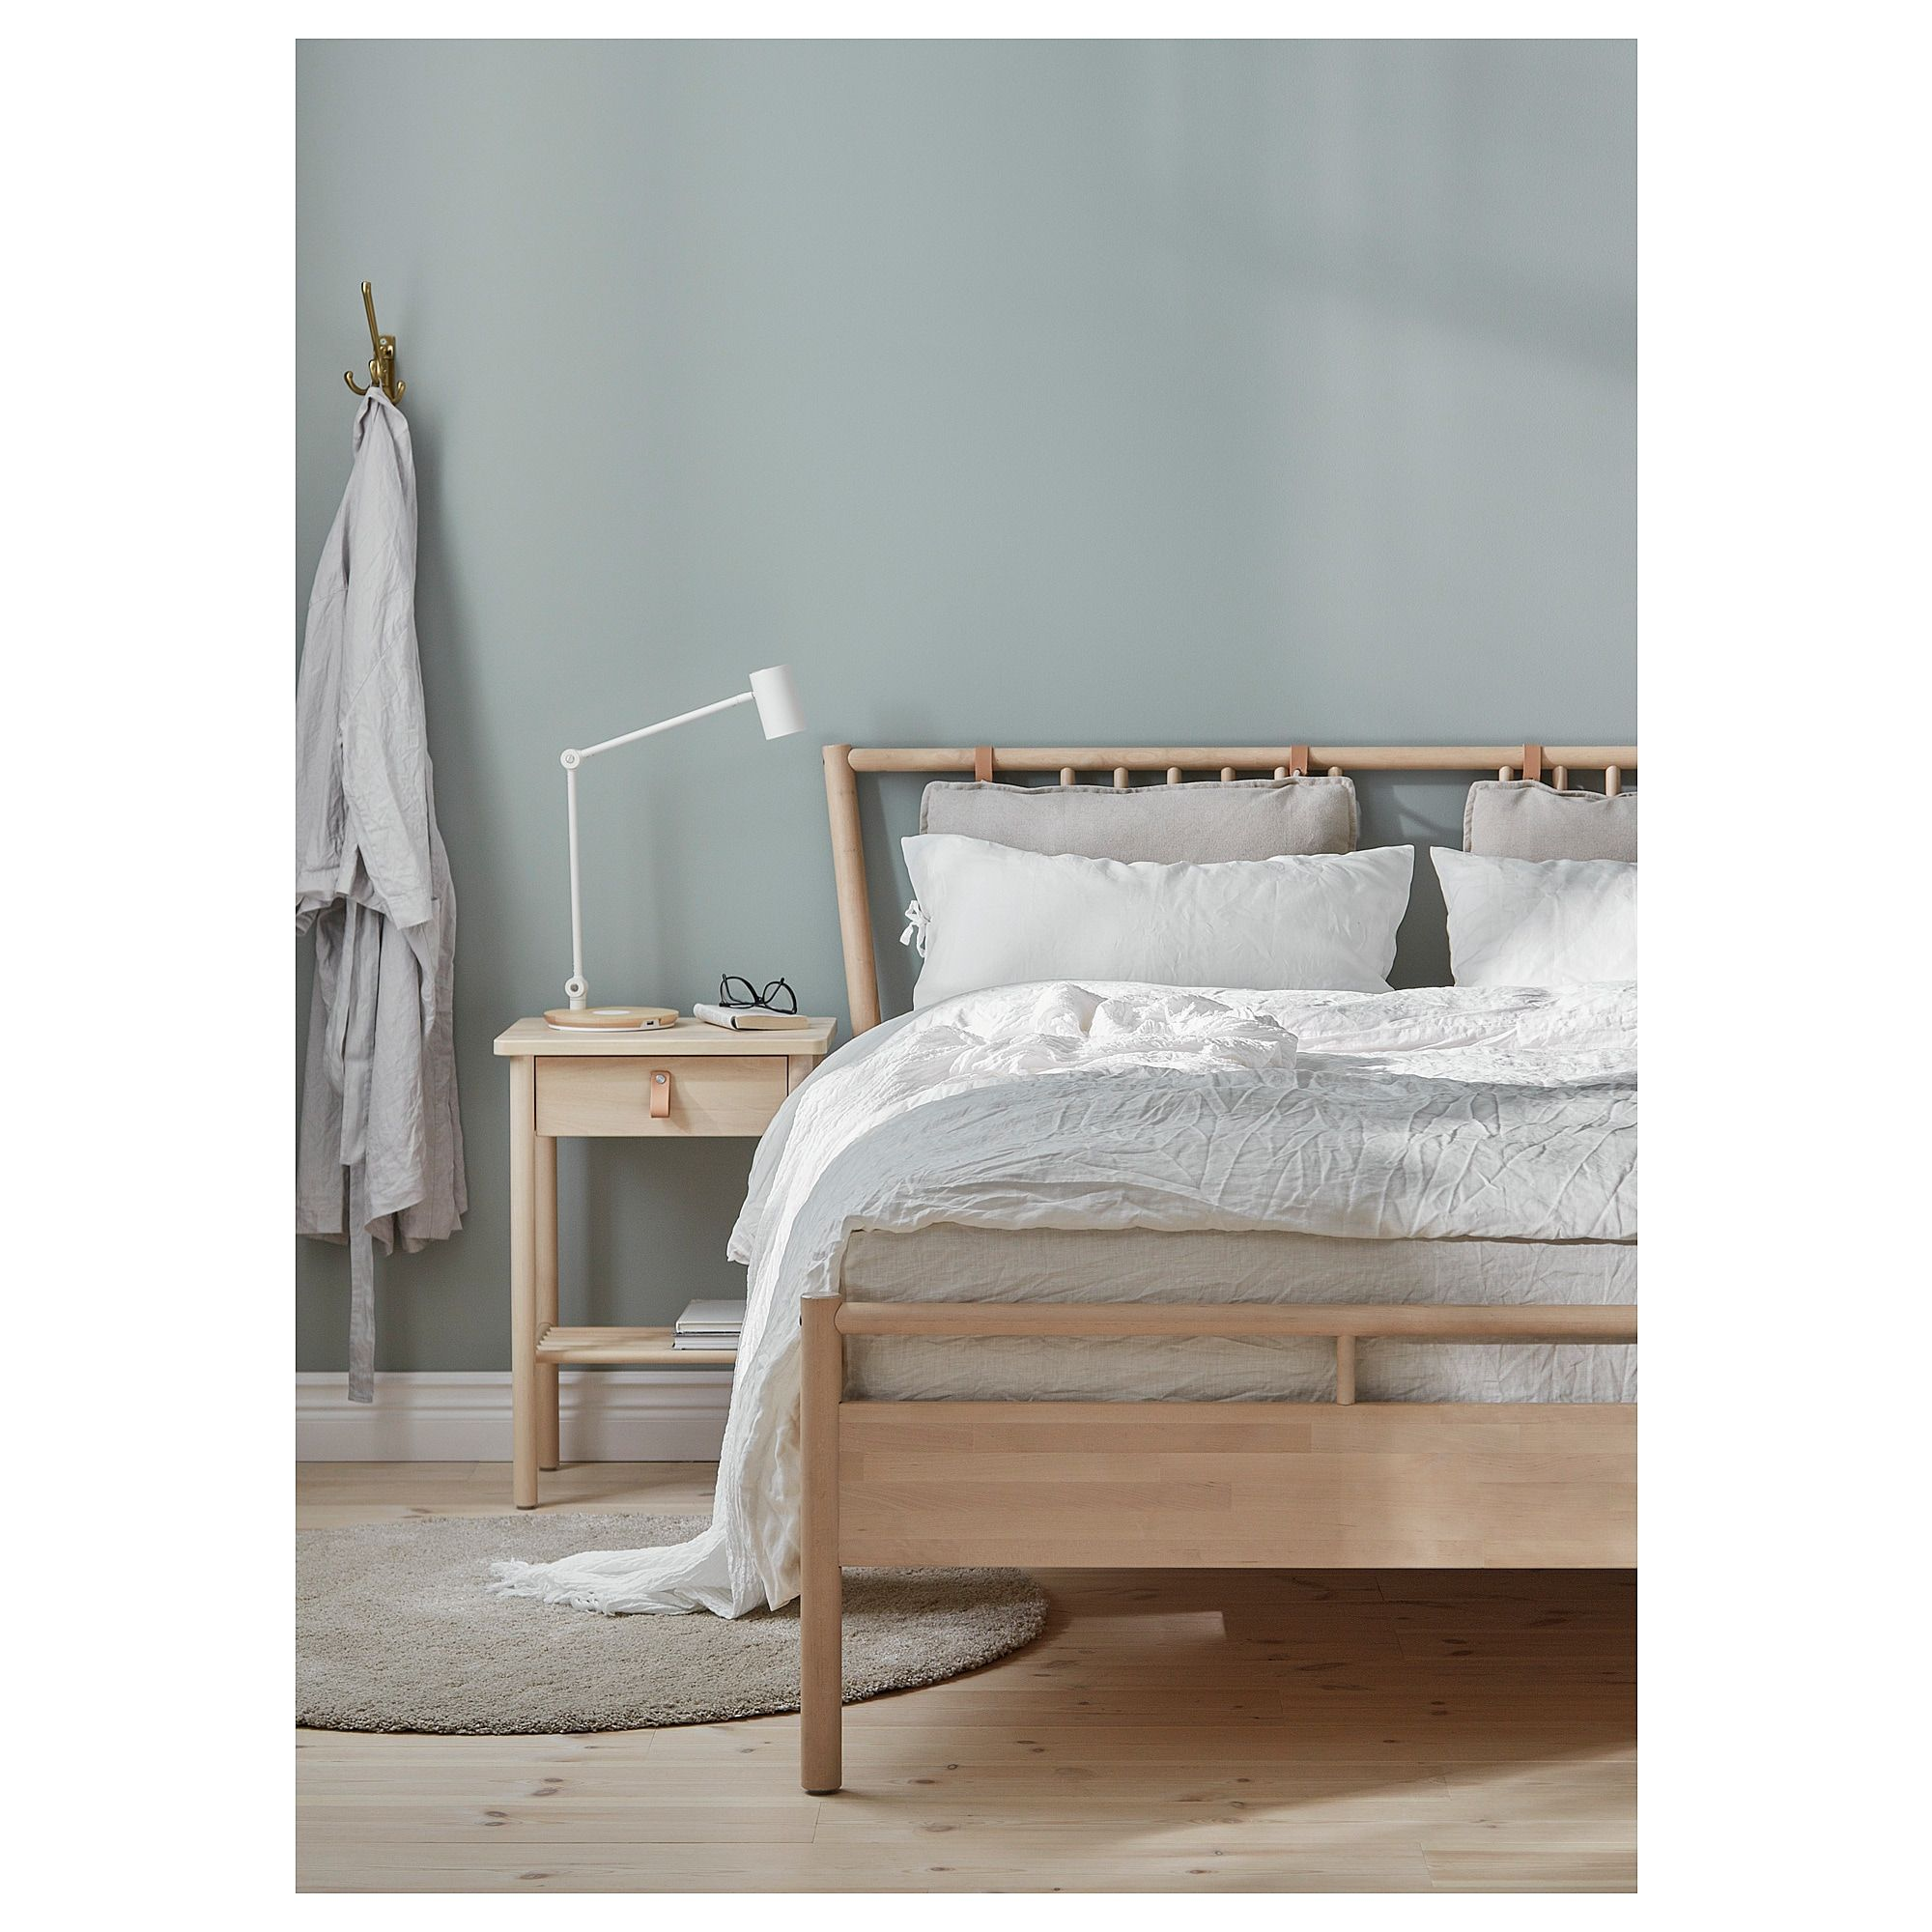 Ikea Us Furniture And Home Furnishings Bed Frame And Headboard Ikea Mandal Bed Queen Size Bed Frames